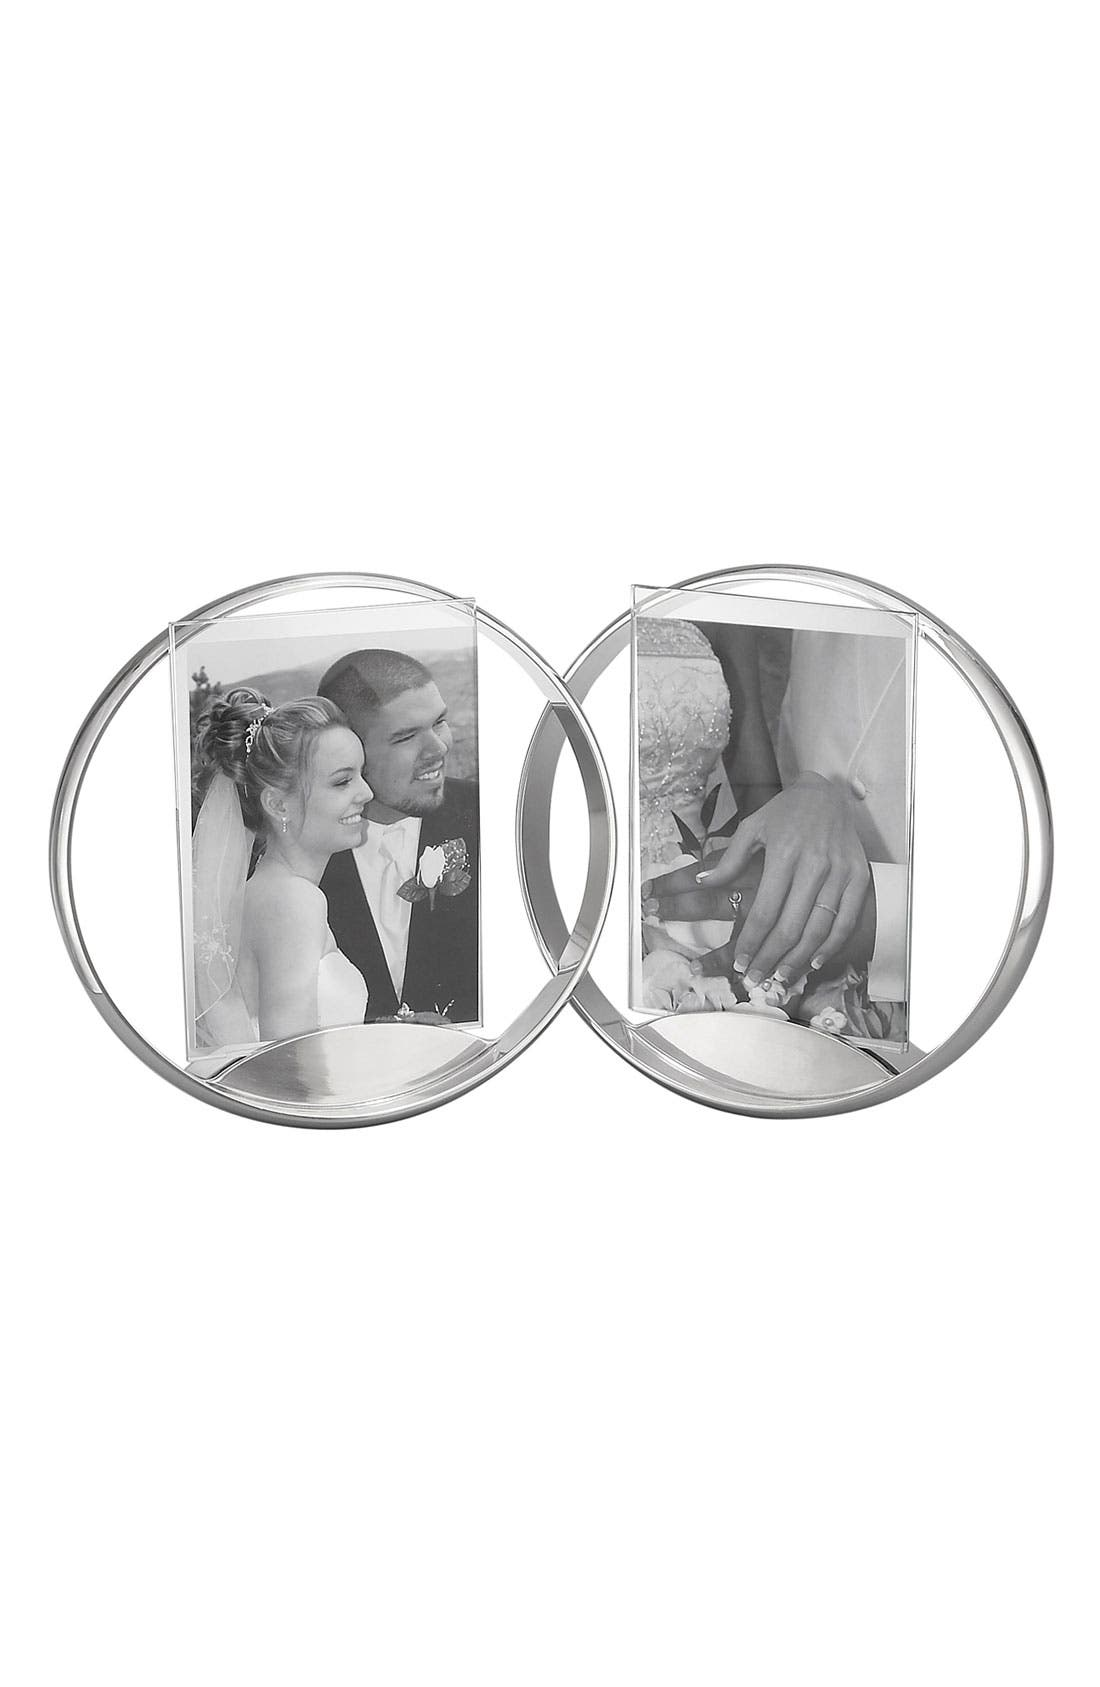 Alternate Image 1 Selected - Nambé 'Forever' Double Picture Frame (5x7)